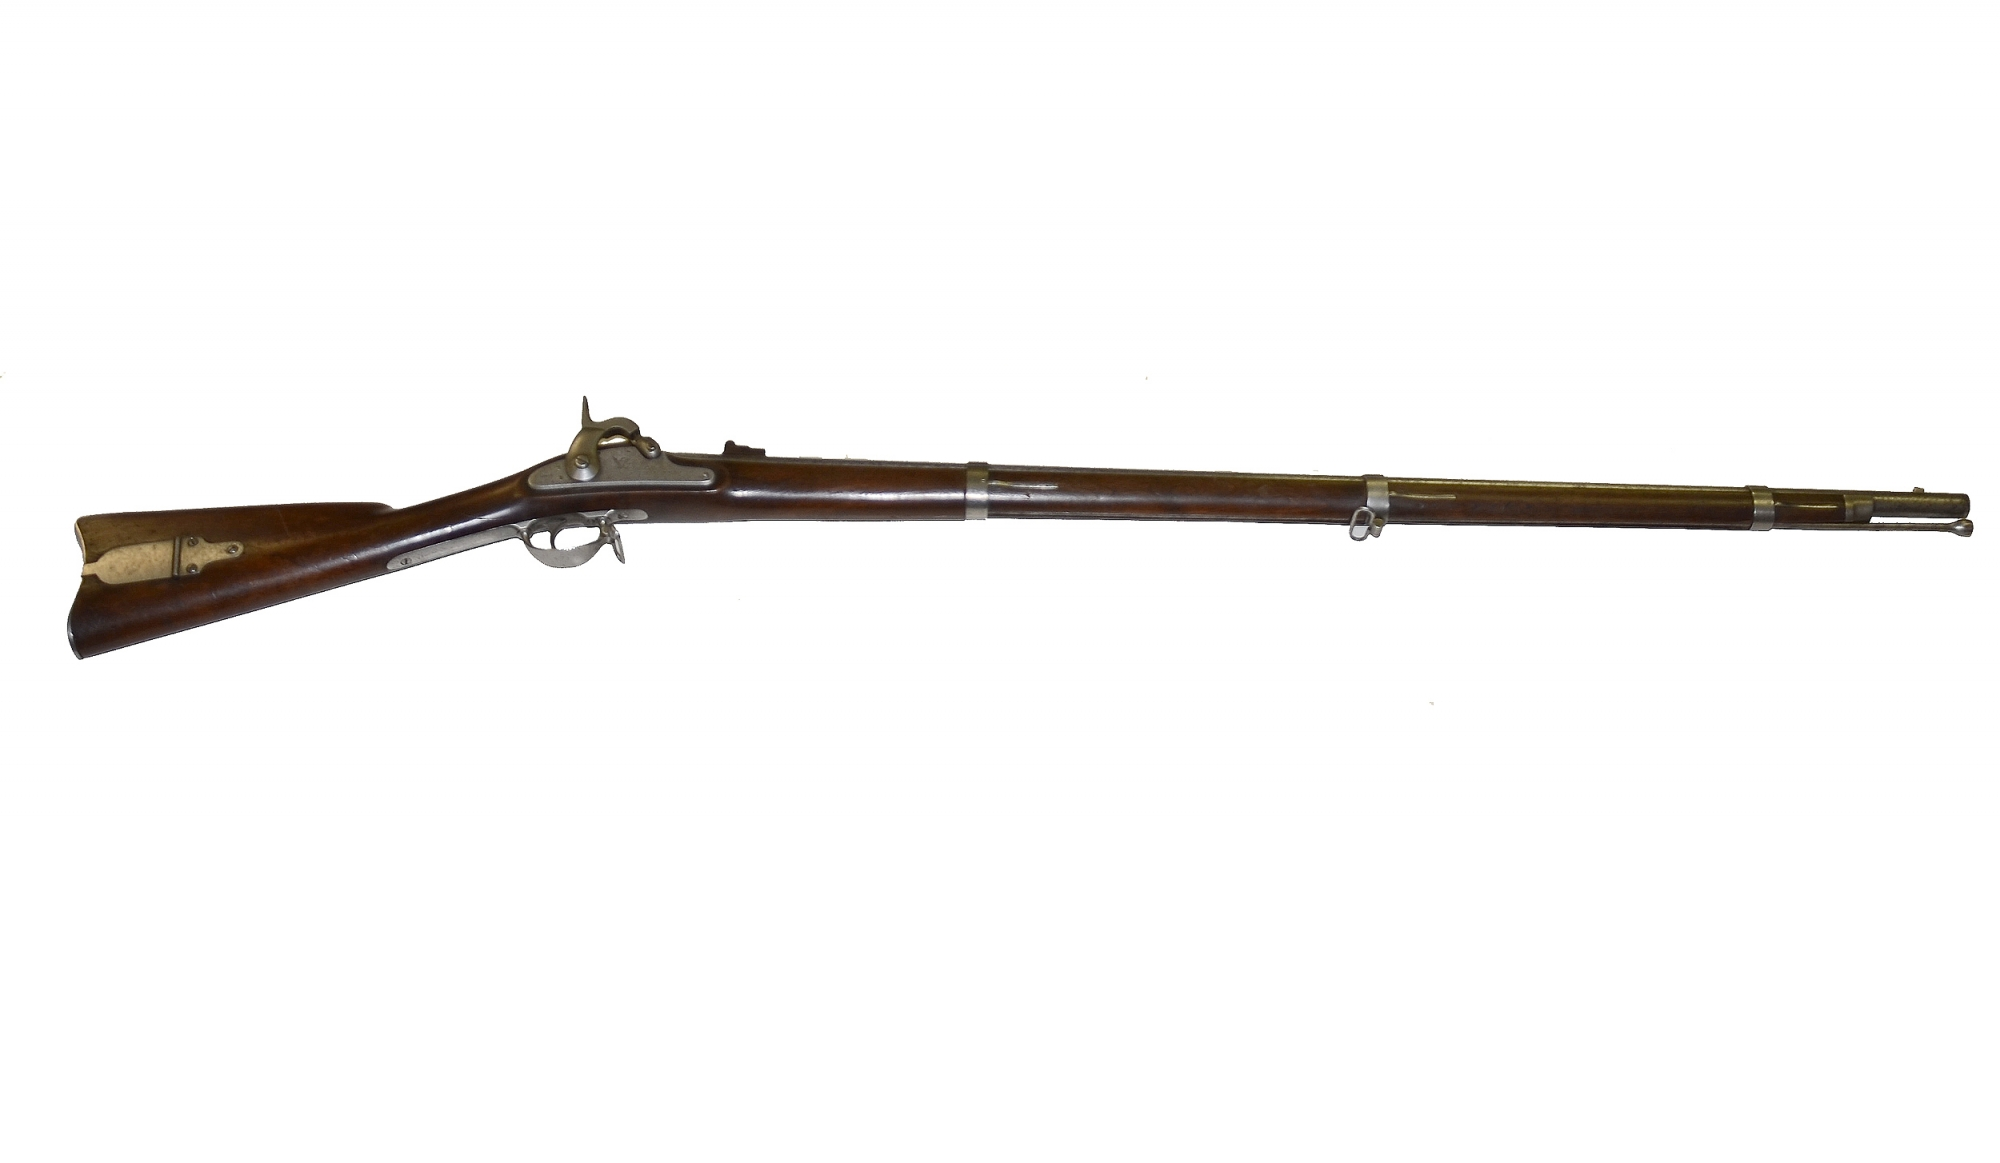 M1861 U.S. SPRINGFIELD RIFLE MUSKET DATED 1862